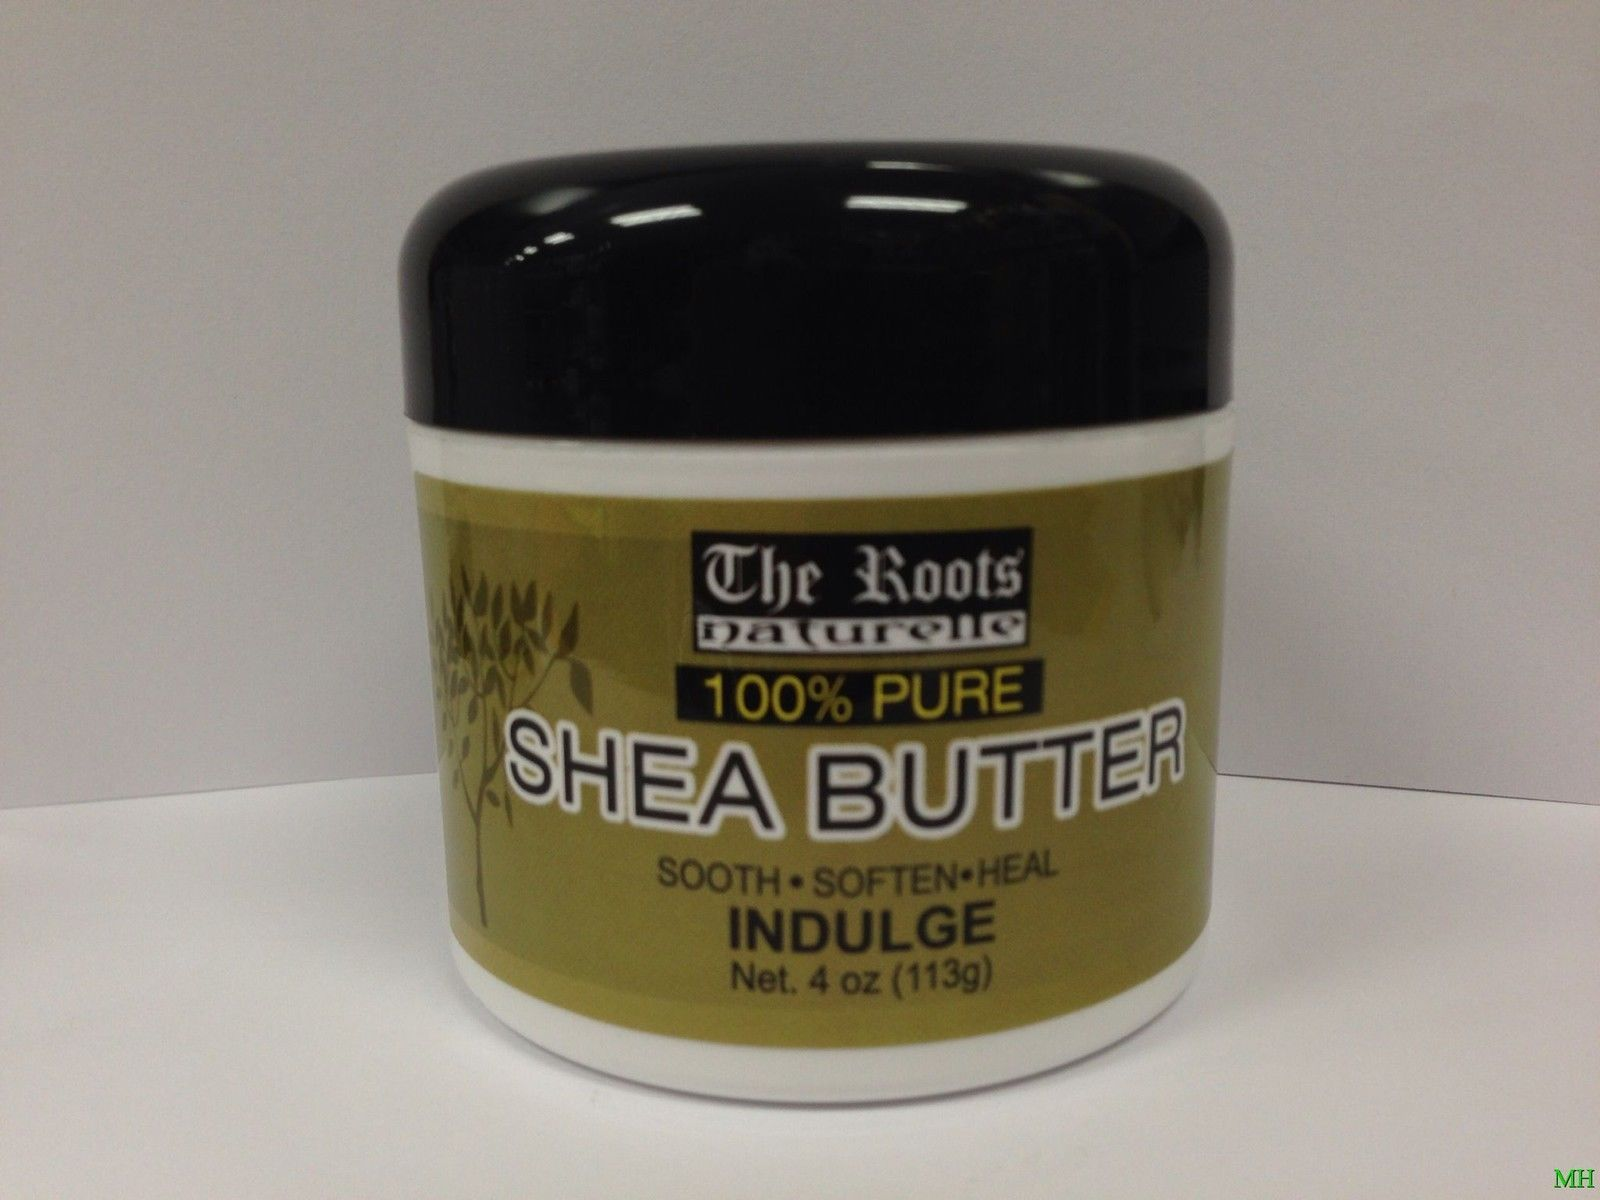 THE ROOTS NATURELLE 100% PURE SHEA BUTTER SOOTH.SOFTEN.HEAL INDULGE 4oz